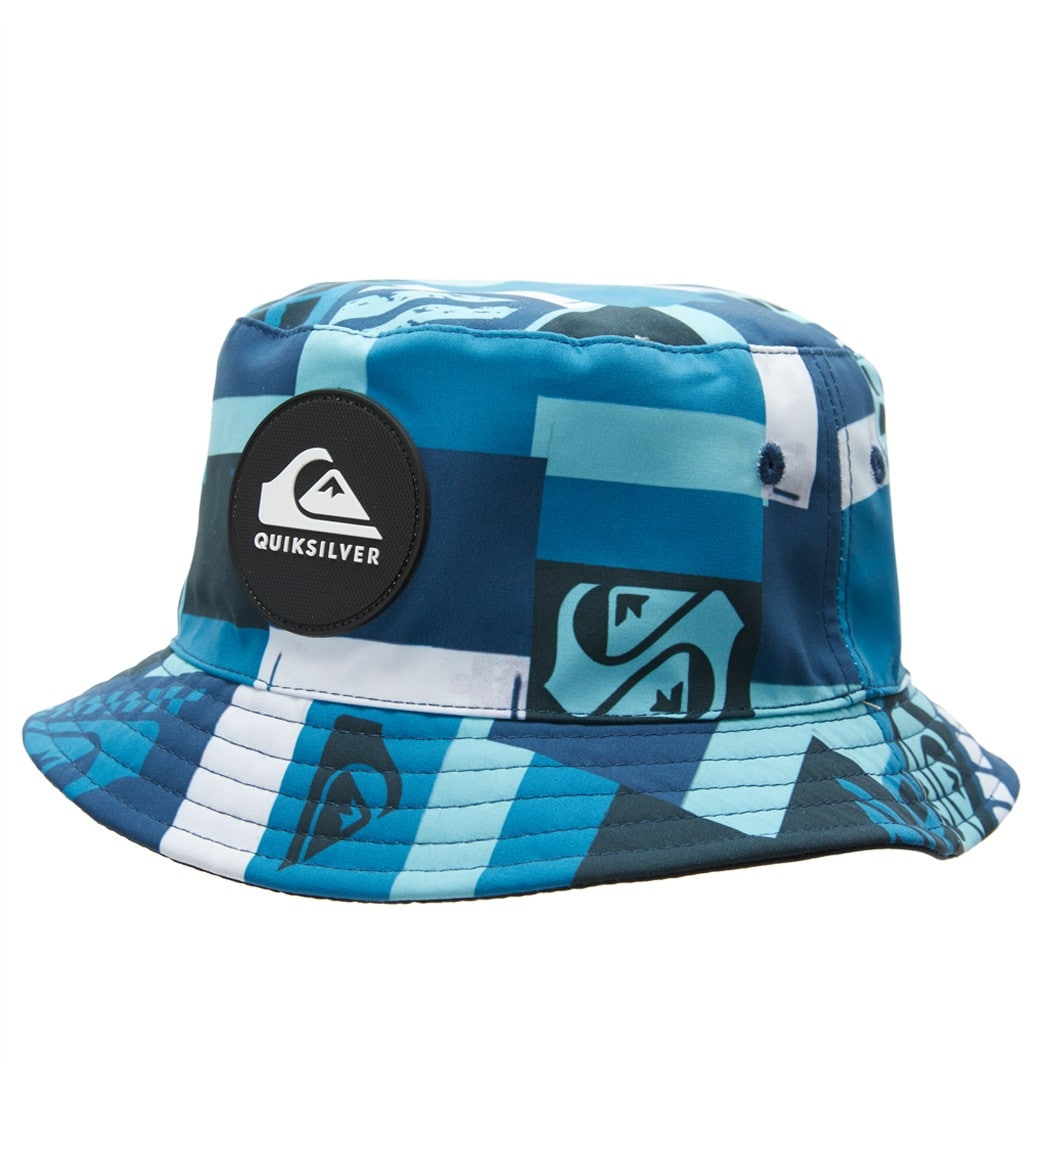 807eae24aad Quiksilver Boys  Lurkerize Bucket Hat at SwimOutlet.com